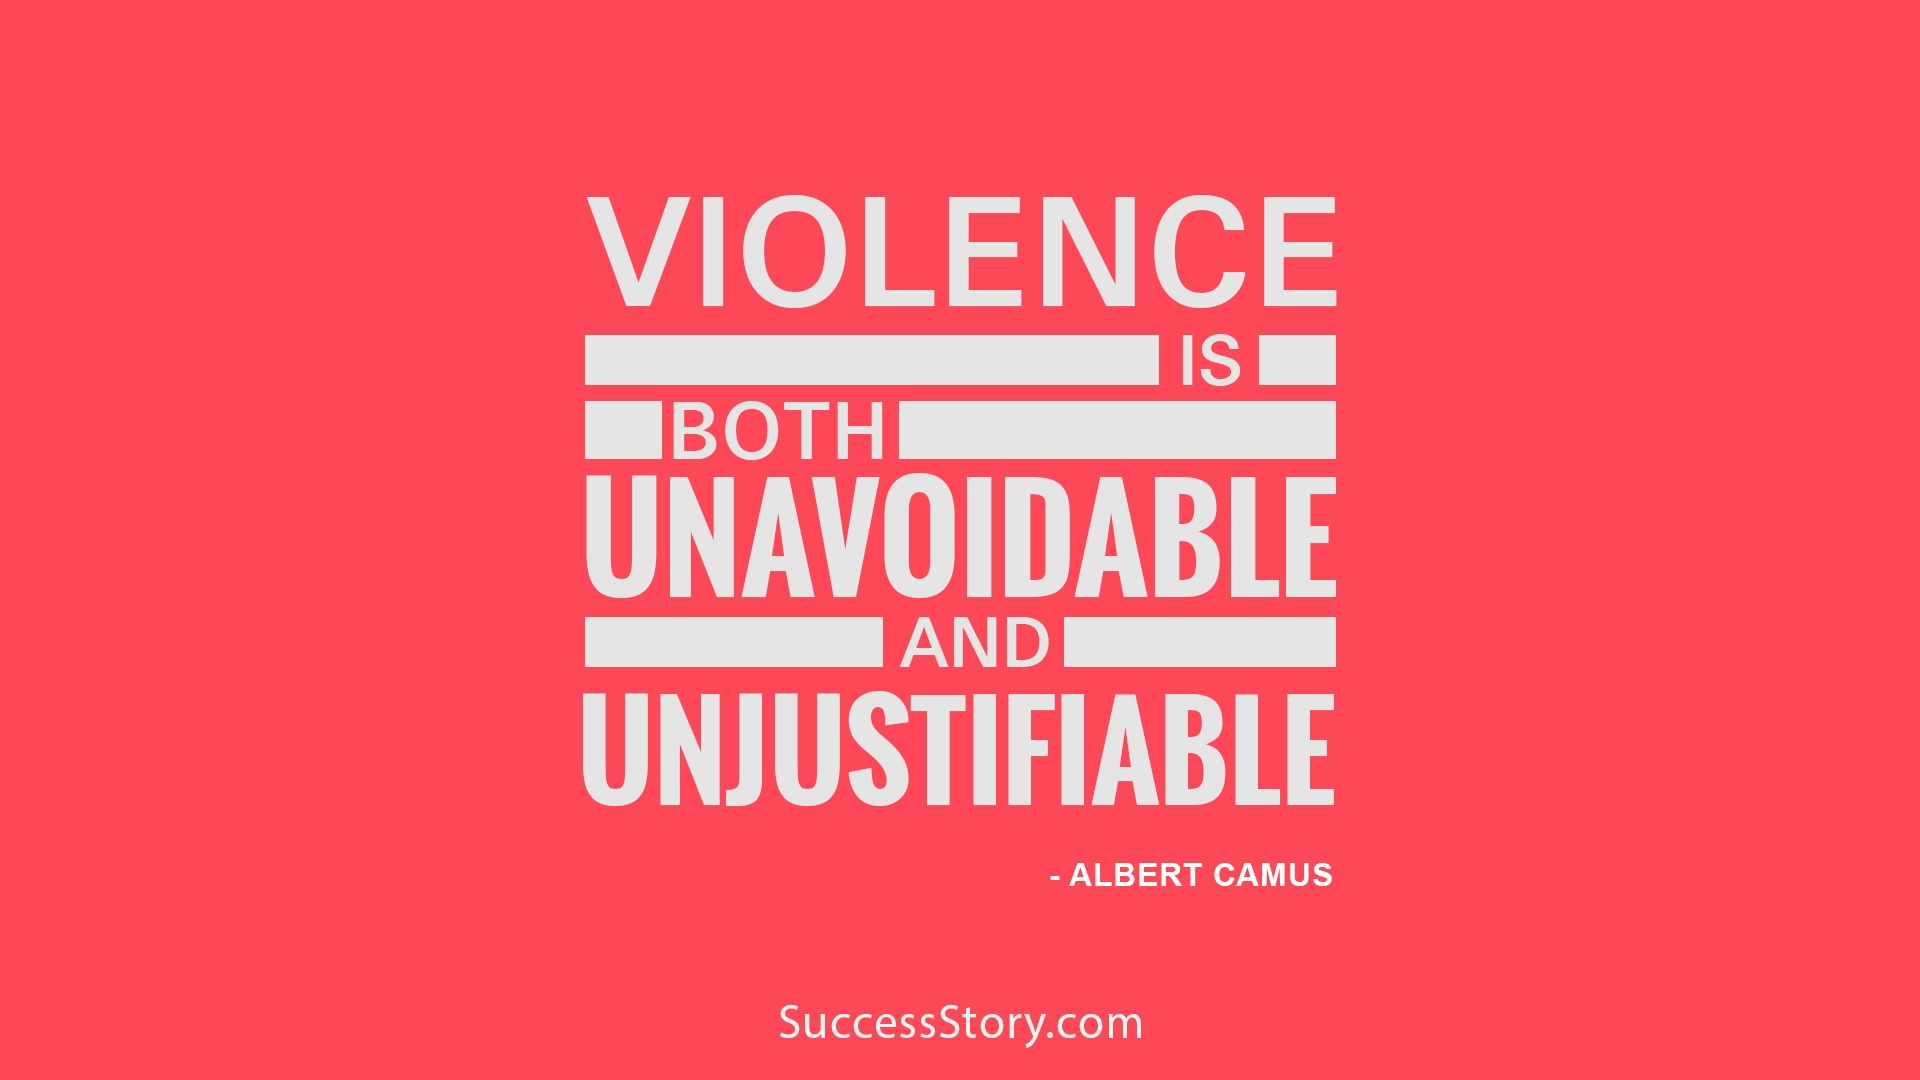 Violence is both